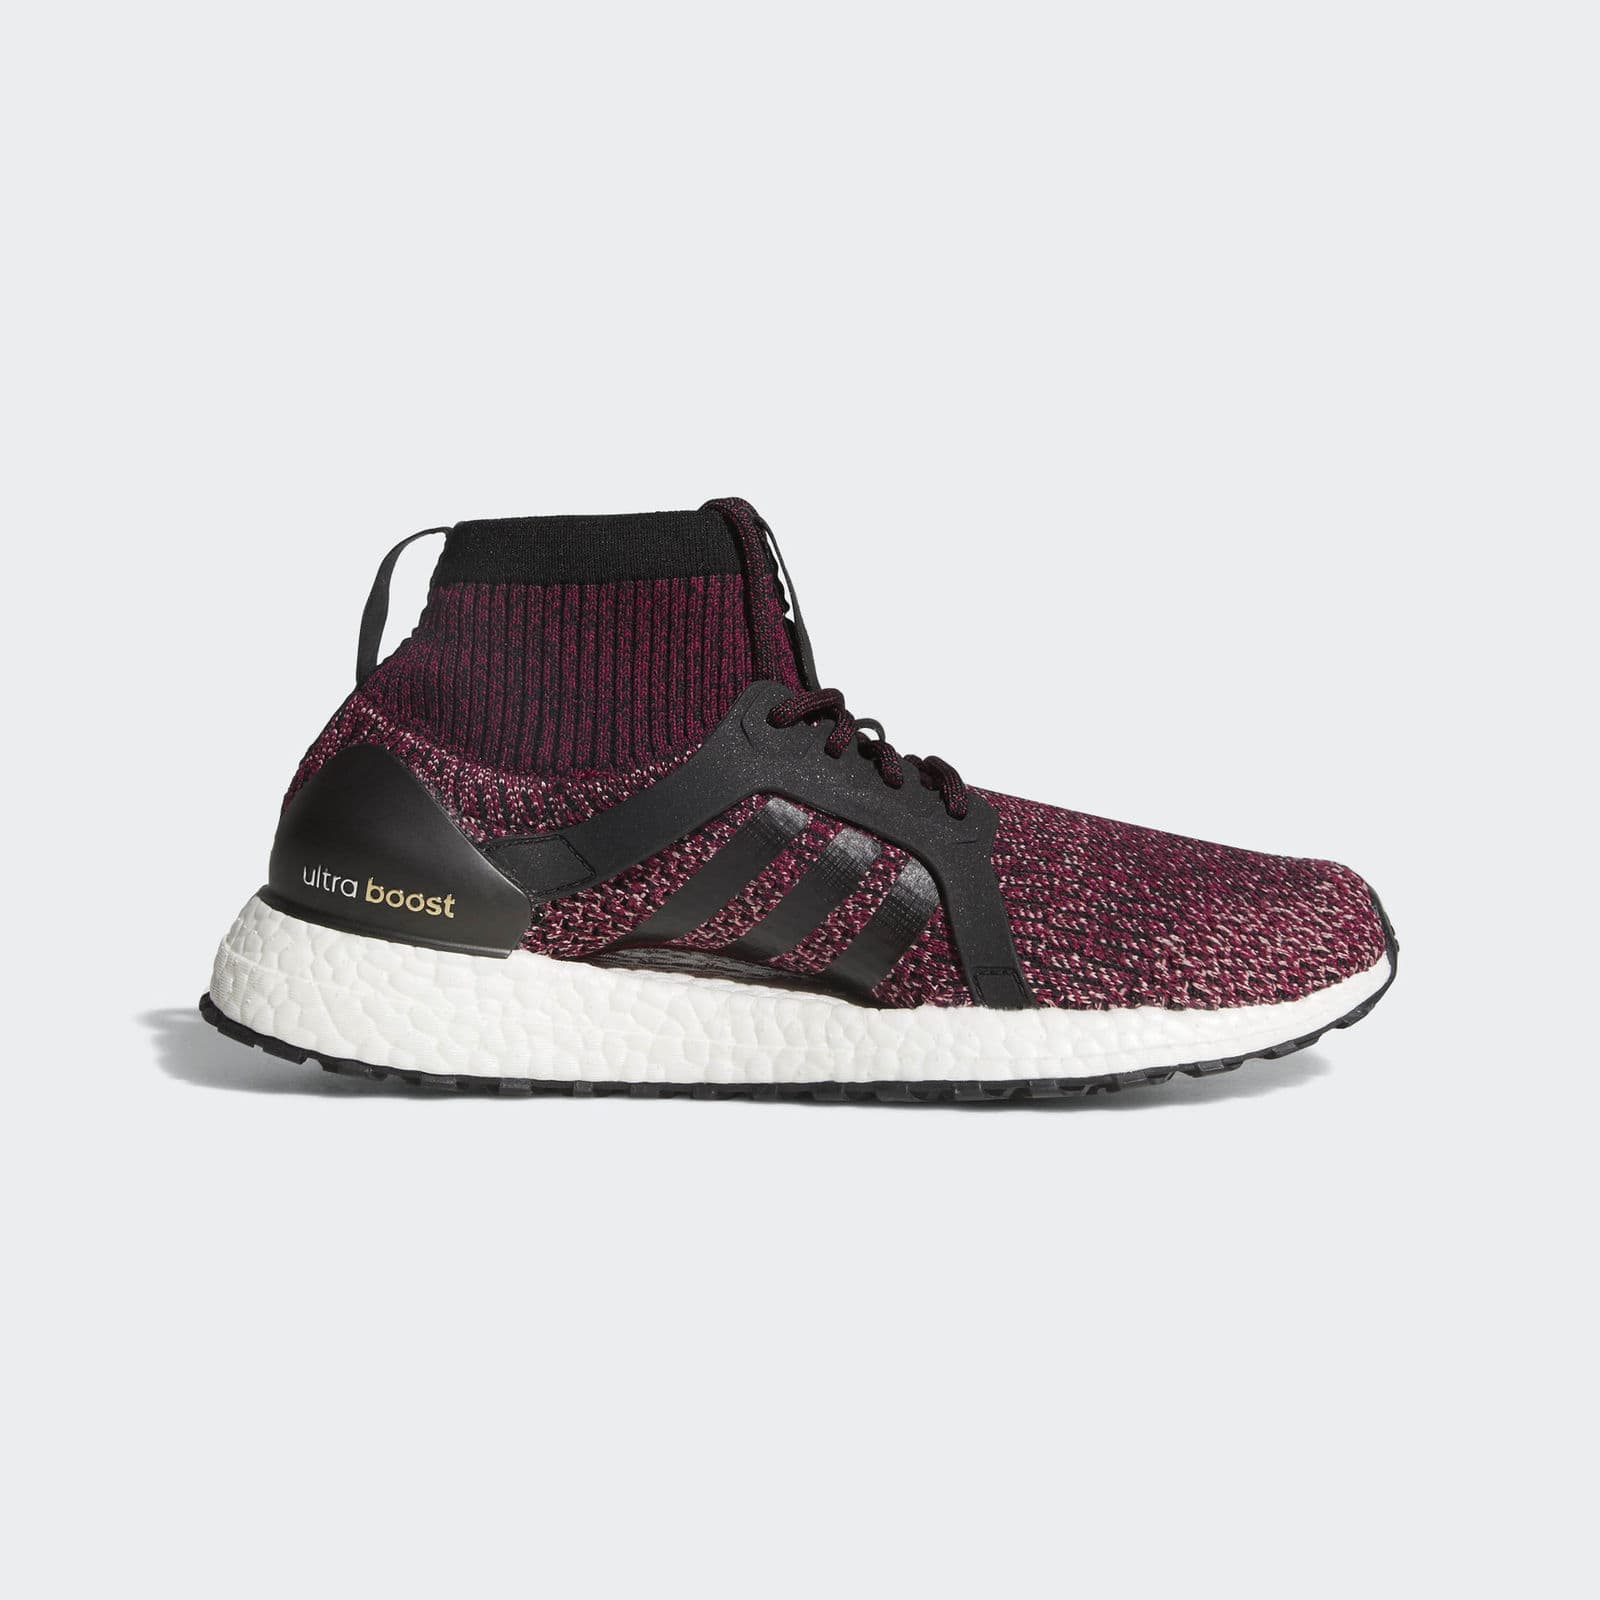 0012c00d2 adidas Ultraboost  Women s X Clima or X All Terrain Shoes ...